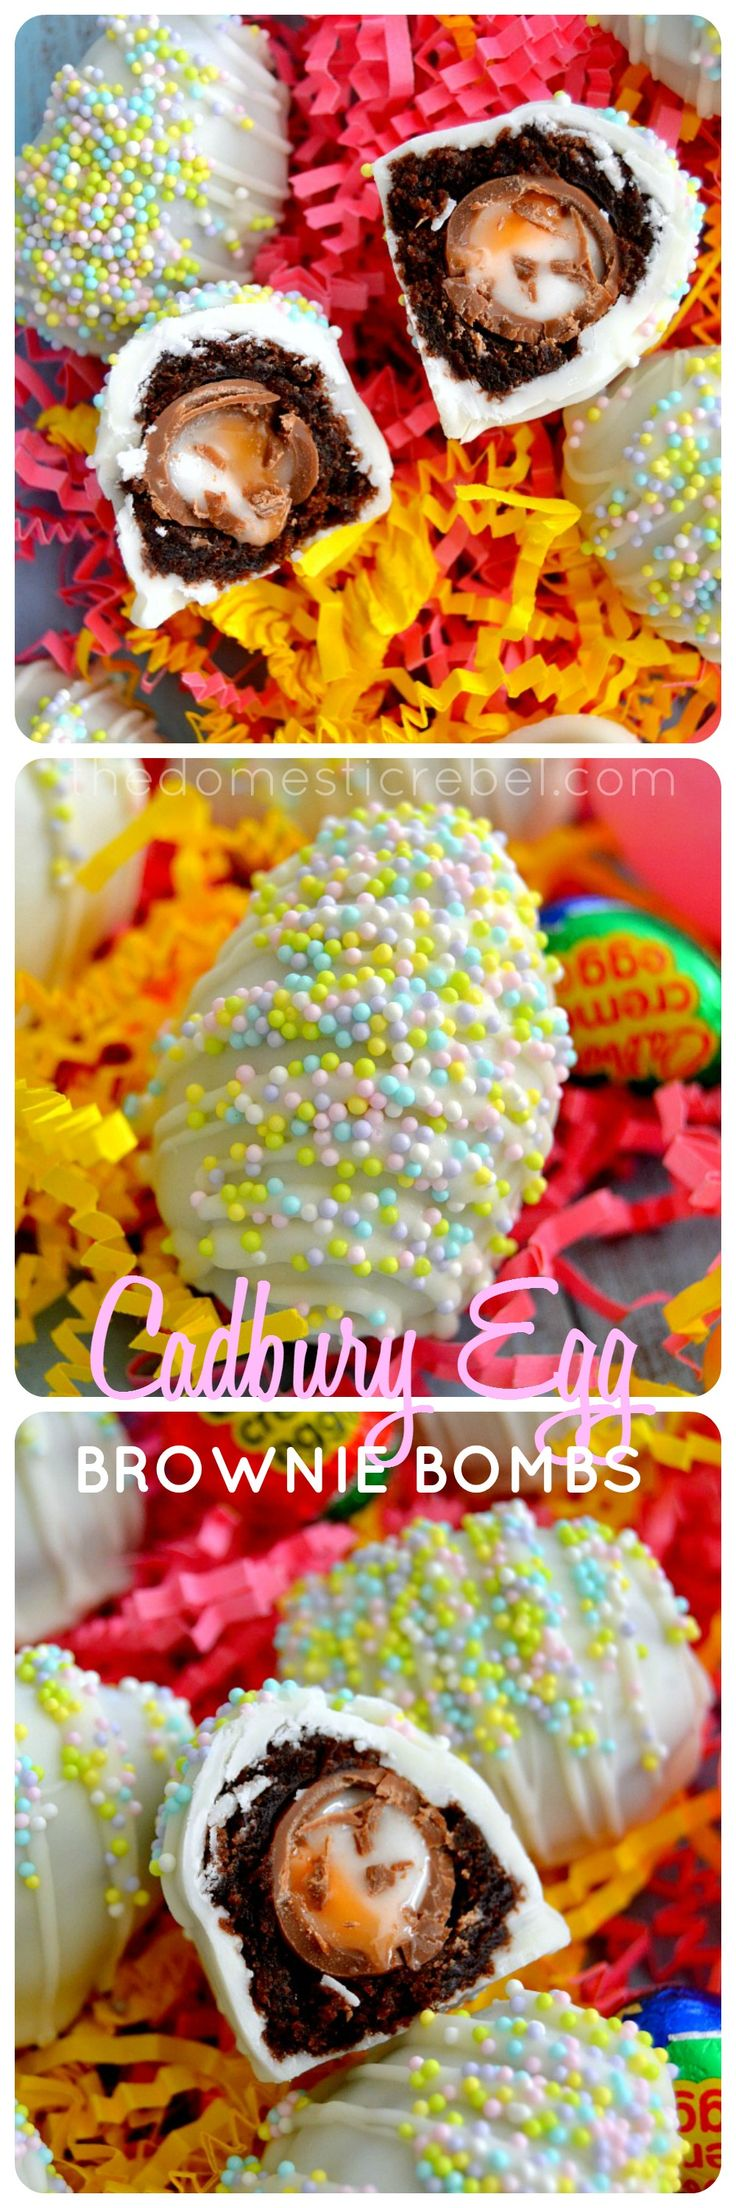 These Cadbury Creme Egg Brownie Bombs are the perfect Easter treat! Rich, fudgy brownies are wrapped around miniature Cadbury Creme Eggs, then the whole bomb is coated in white chocolate. So sweet & rich!